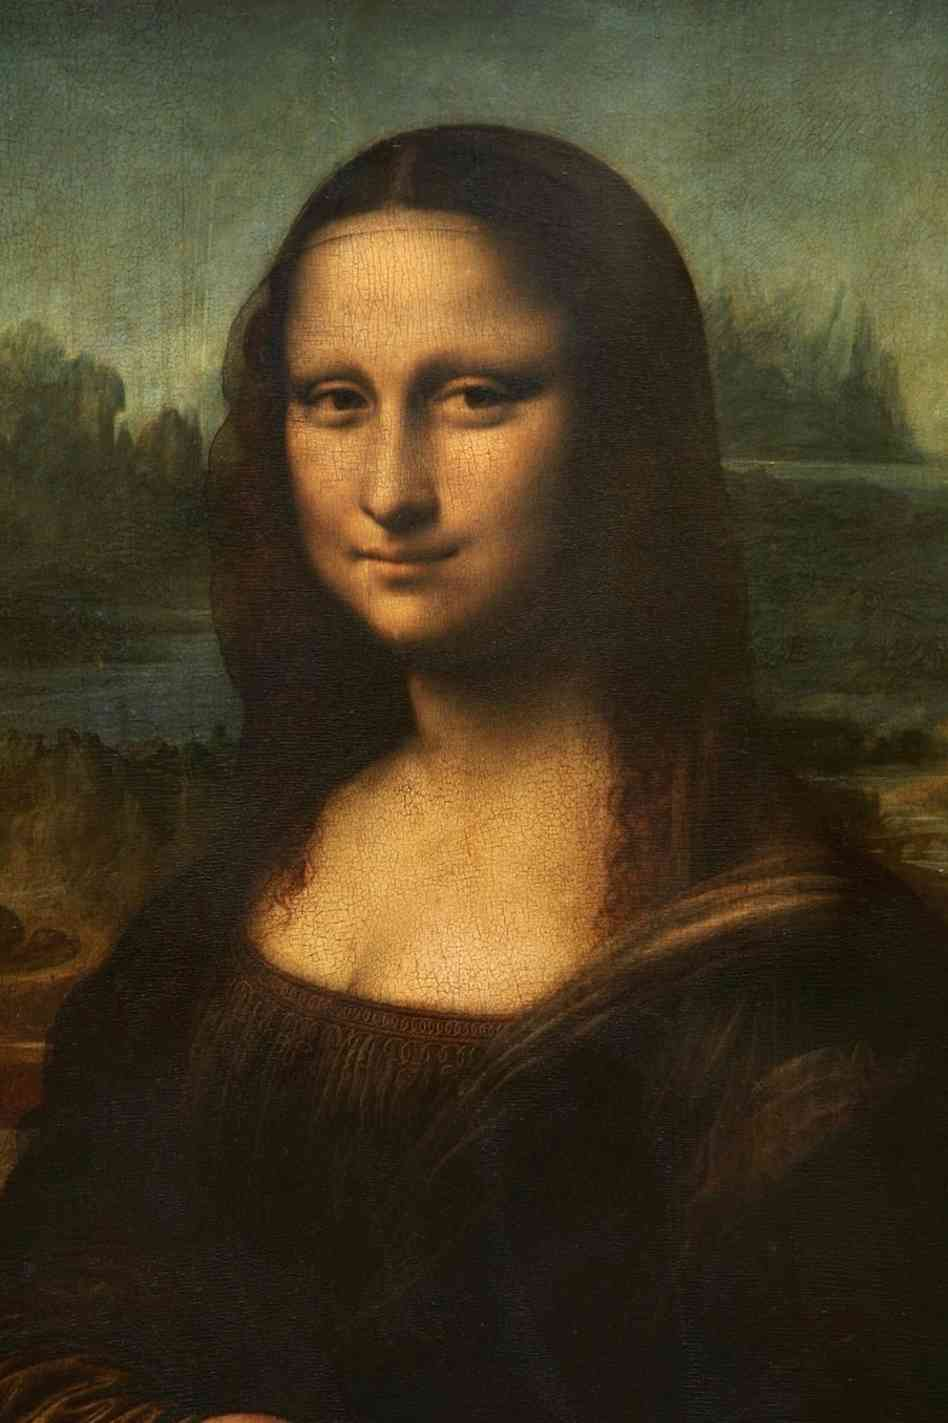 Mona lisa hd wallpapers wallpaper cave hd mona lisa wallpapers and photos hd art wallpapers altavistaventures Gallery